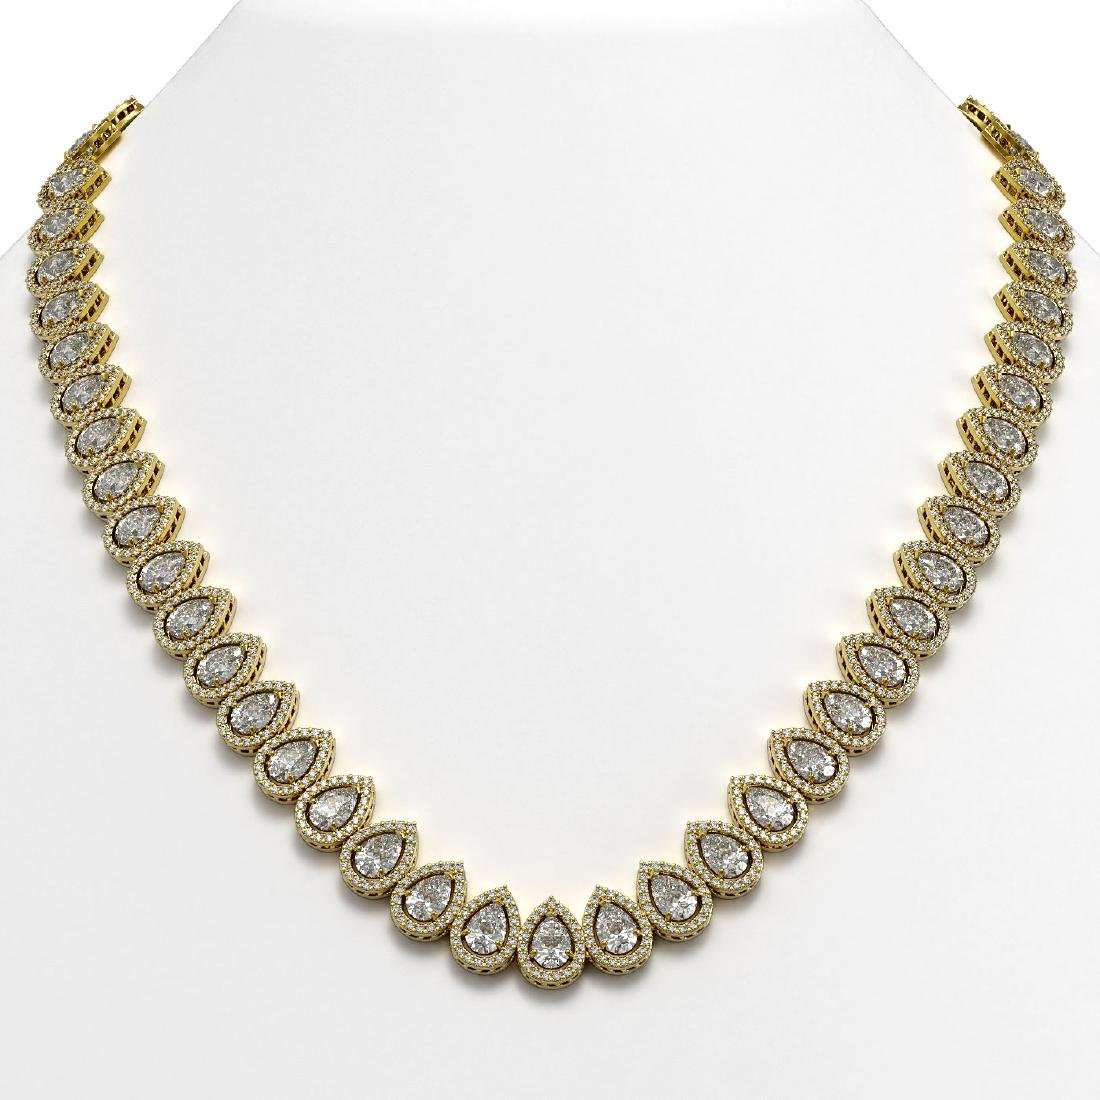 34.83 CTW Pear Diamond Designer Necklace 18K Yellow